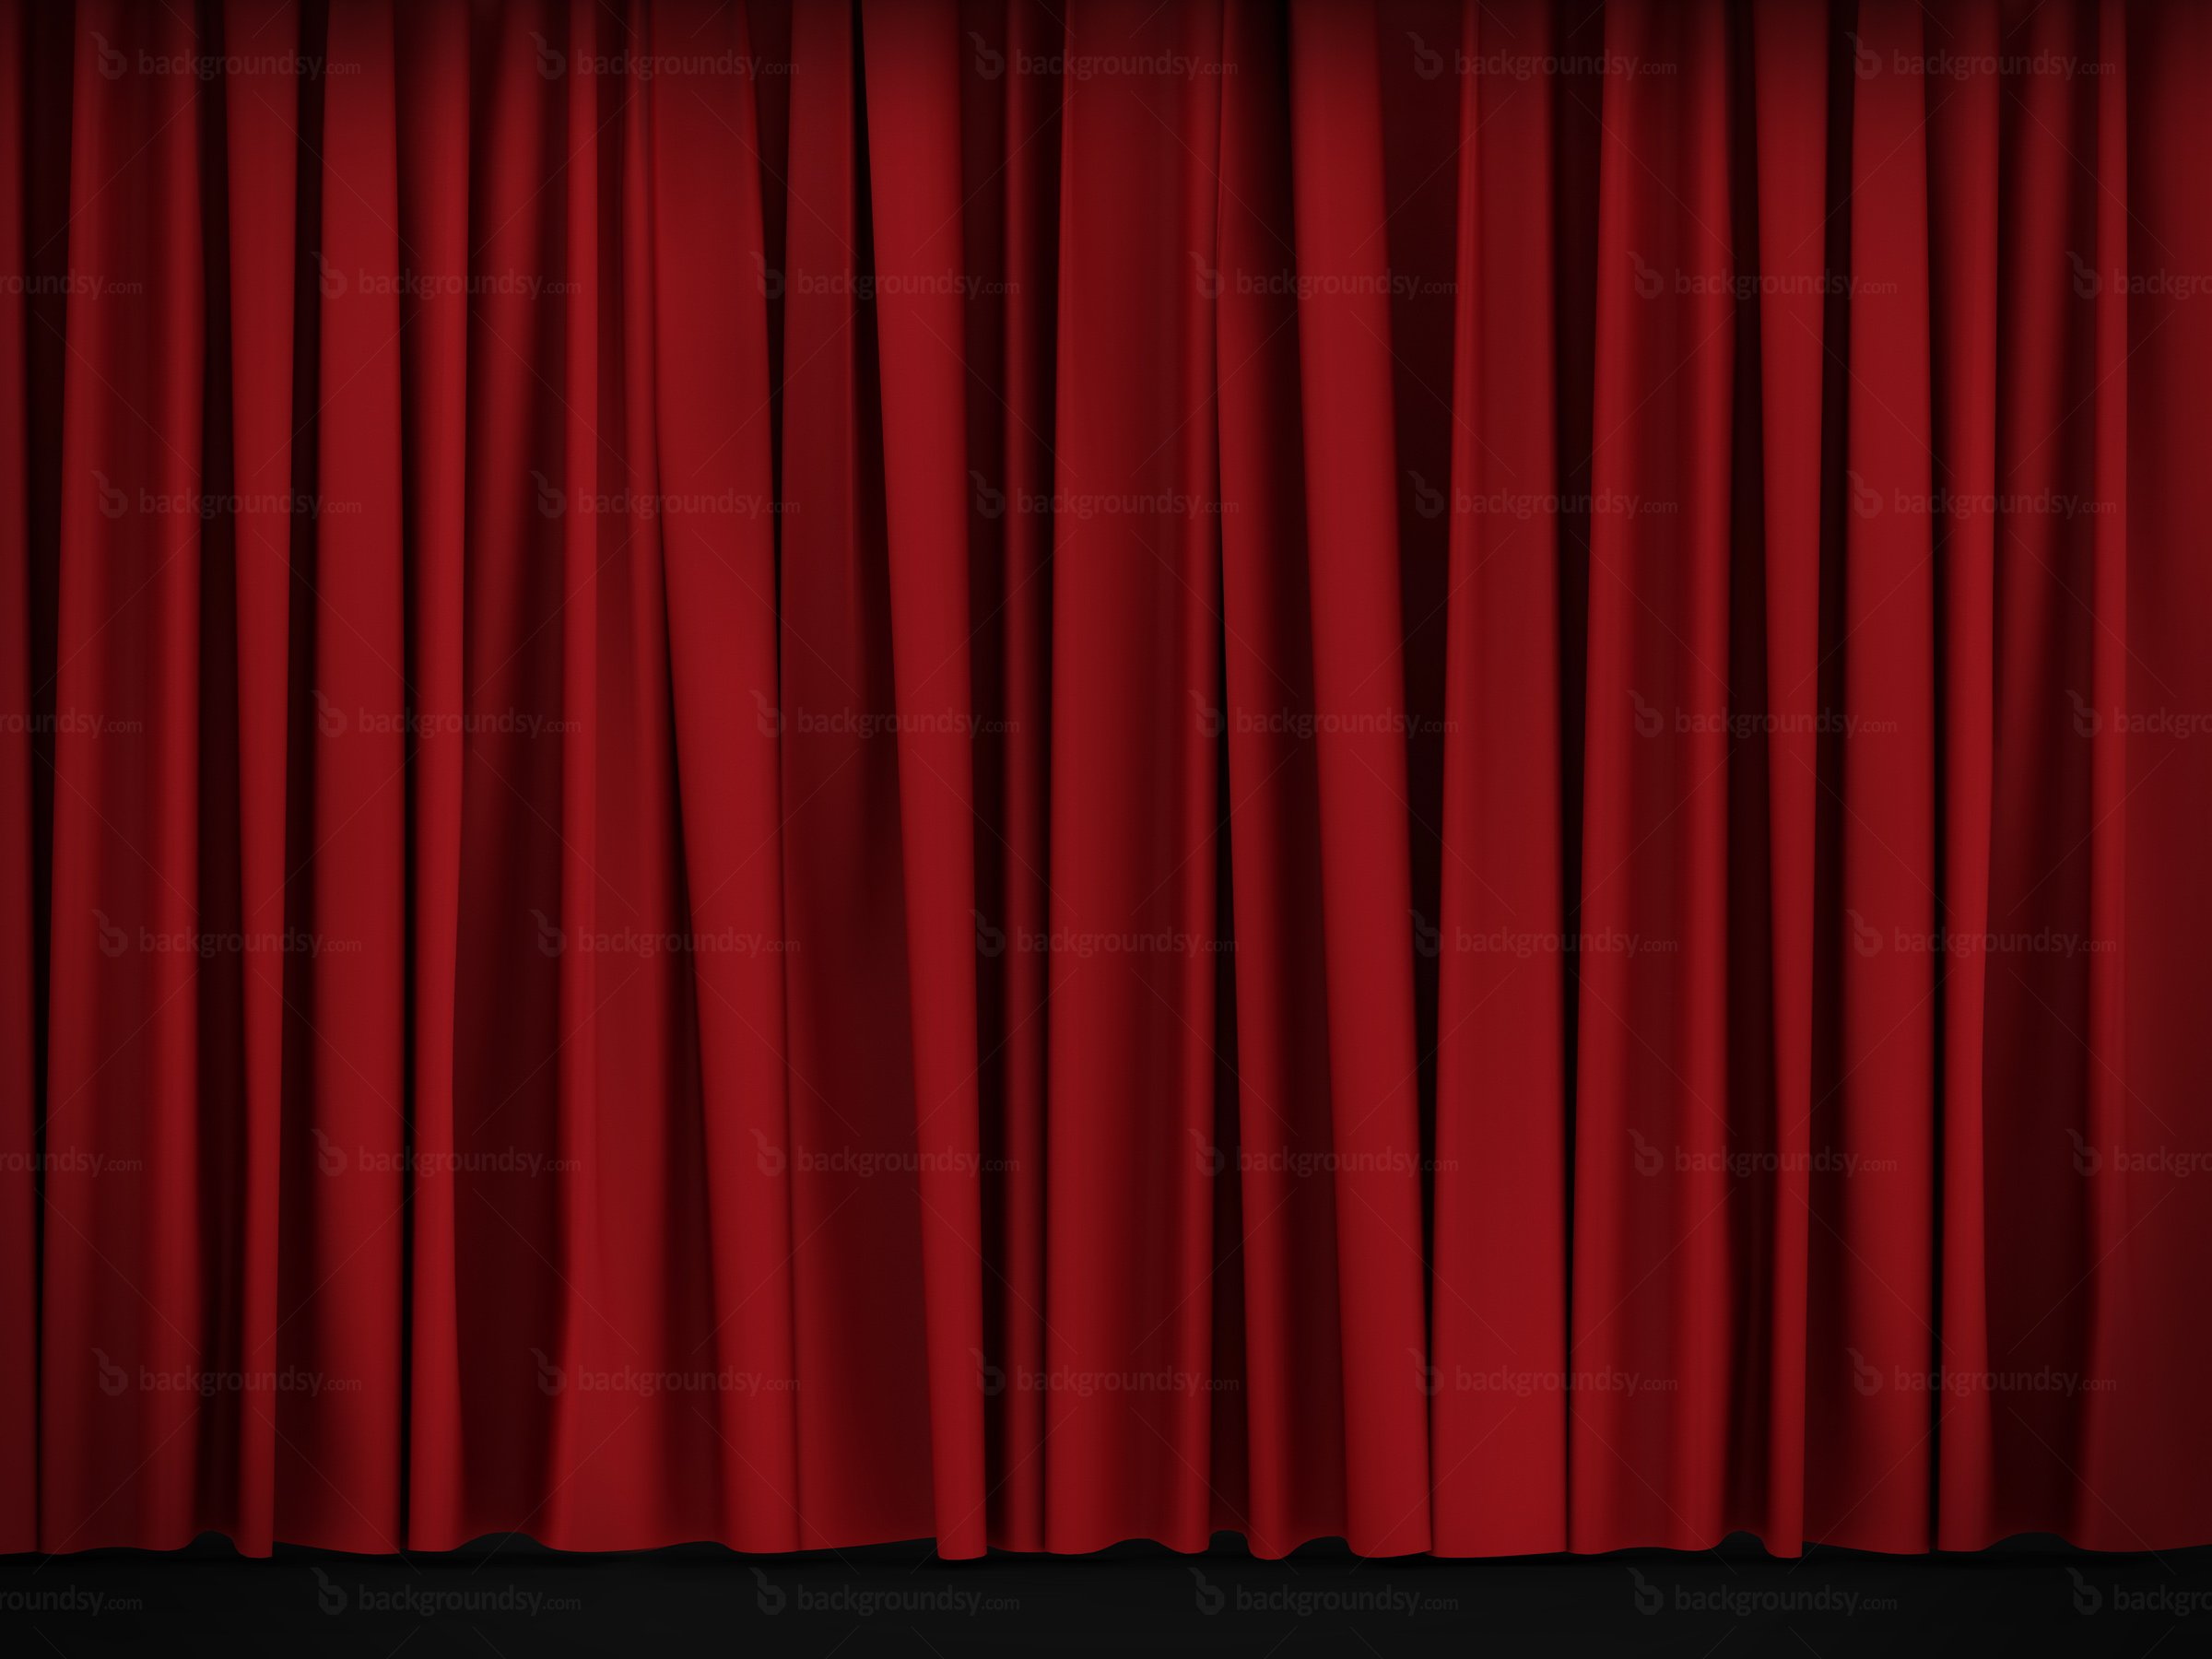 Red curtain wallpaper wallpapersafari for Theatre curtains psd